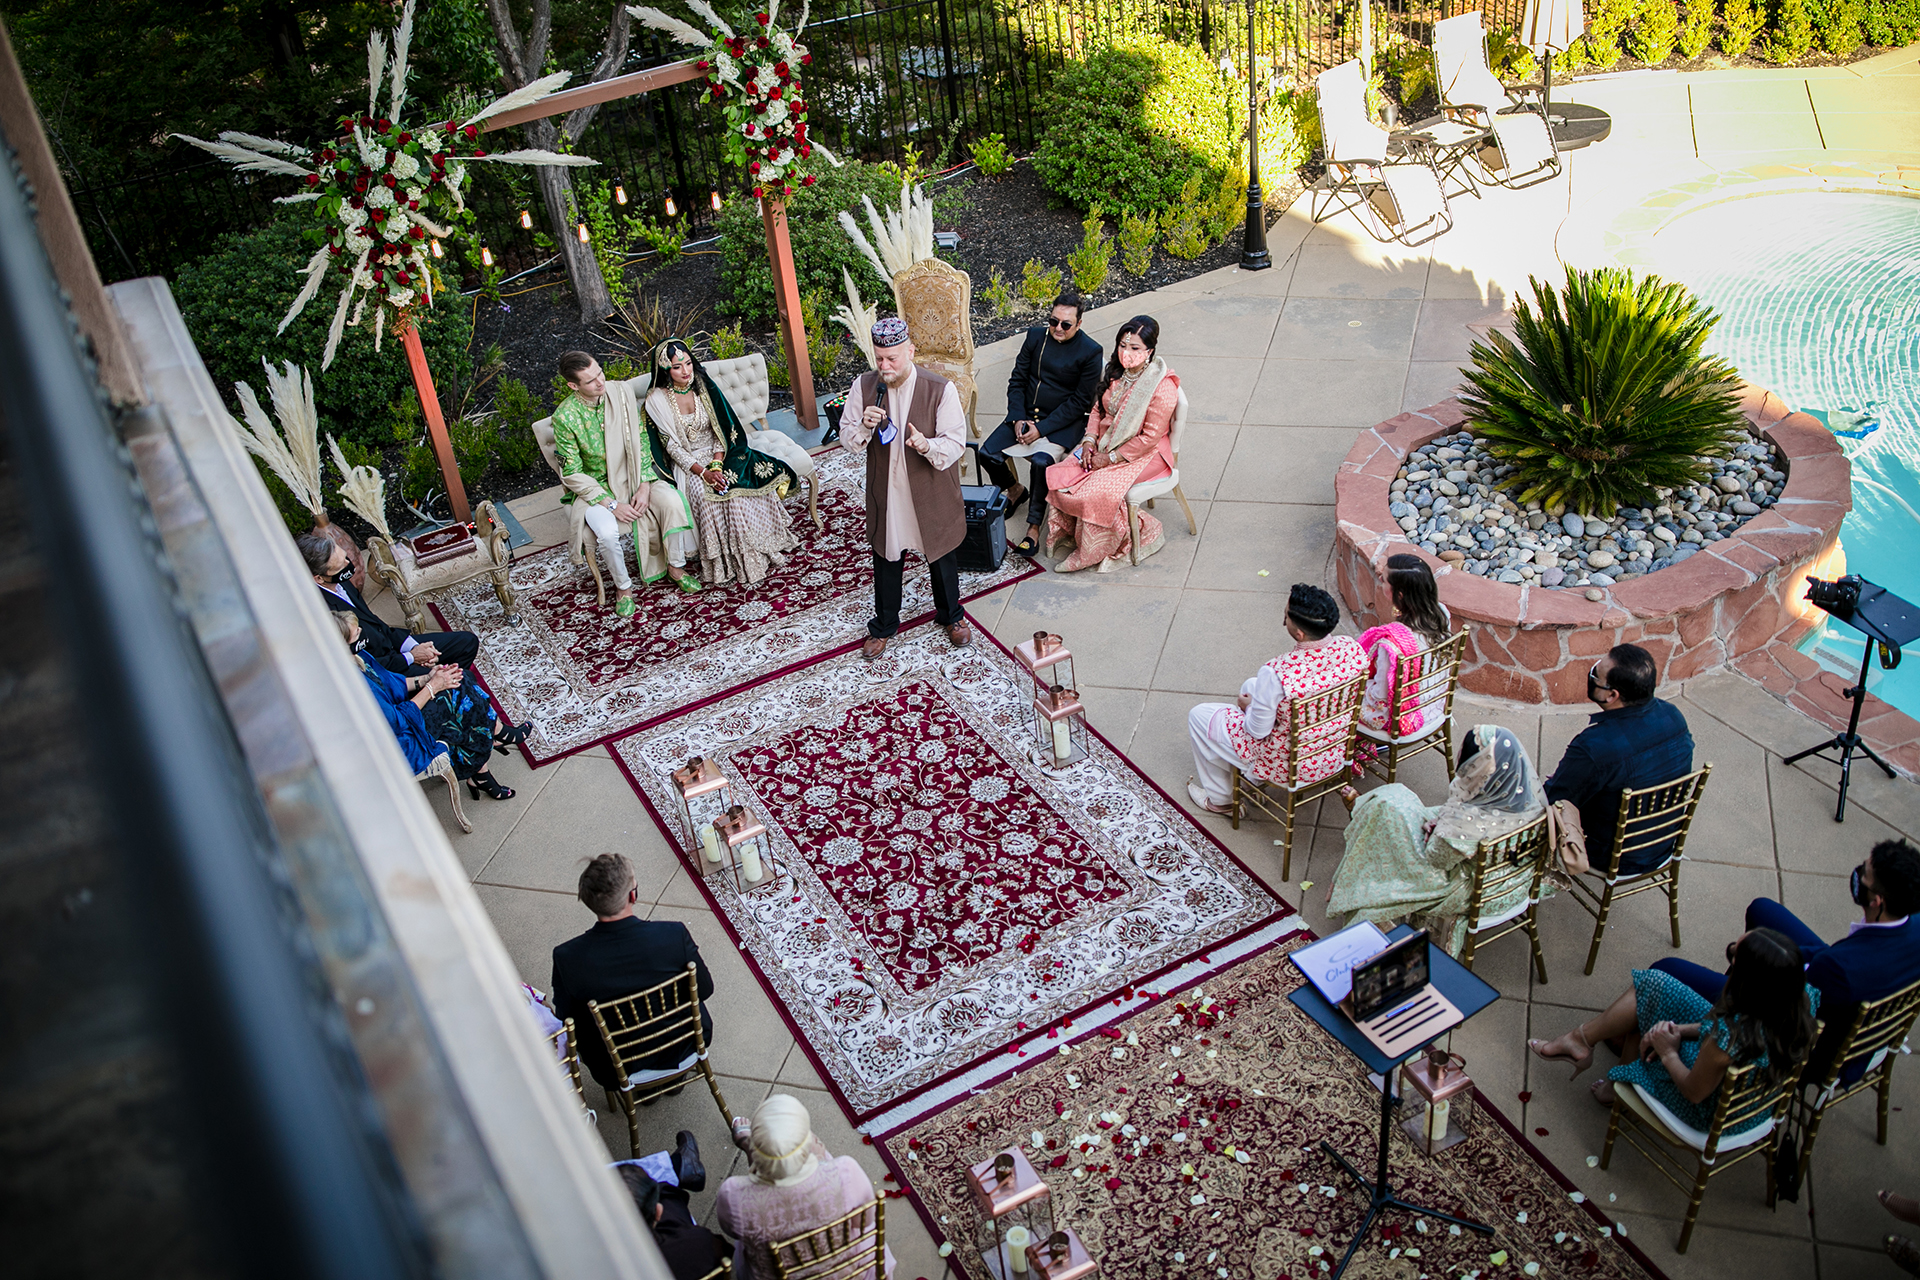 Pleasanton, California Outdoor Elopement Photography | Looking down from the balcony, we can see the ceremony